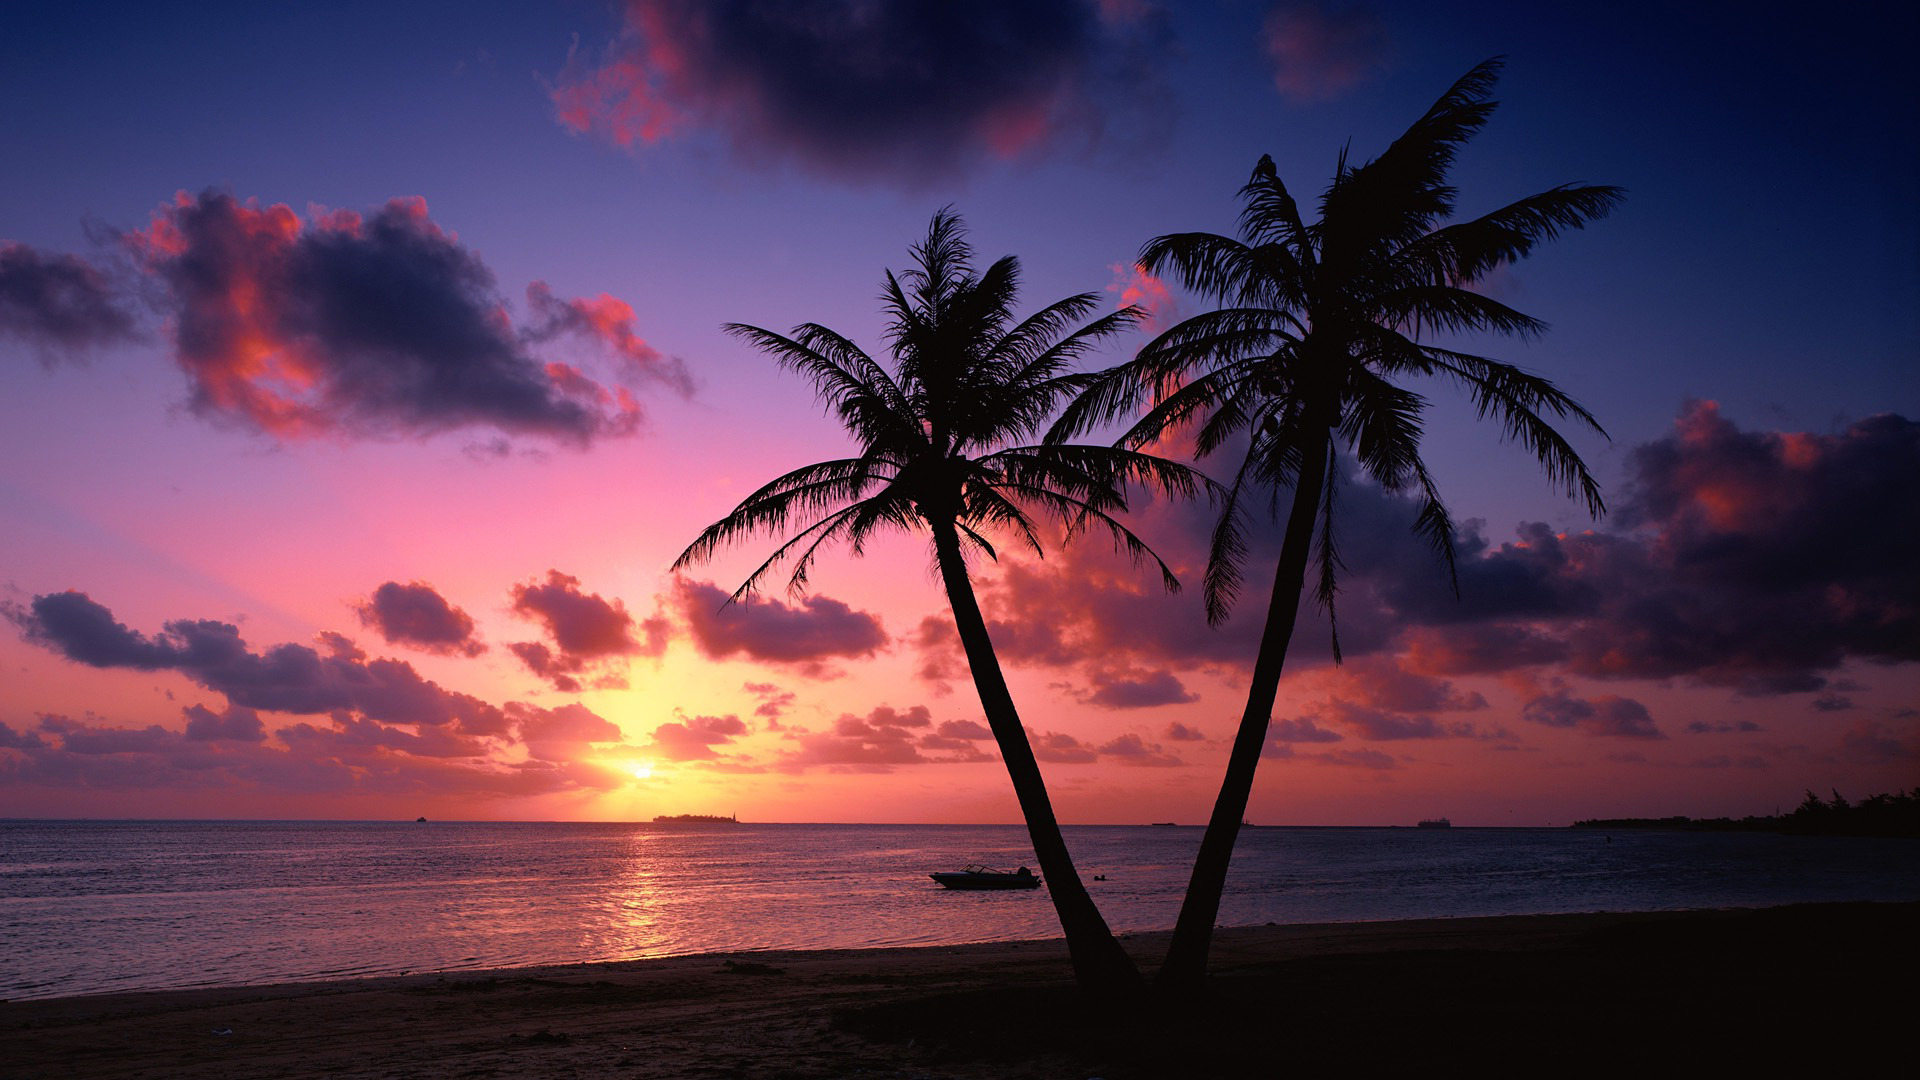 sunset-on-a-tropical-beach78913.jpg